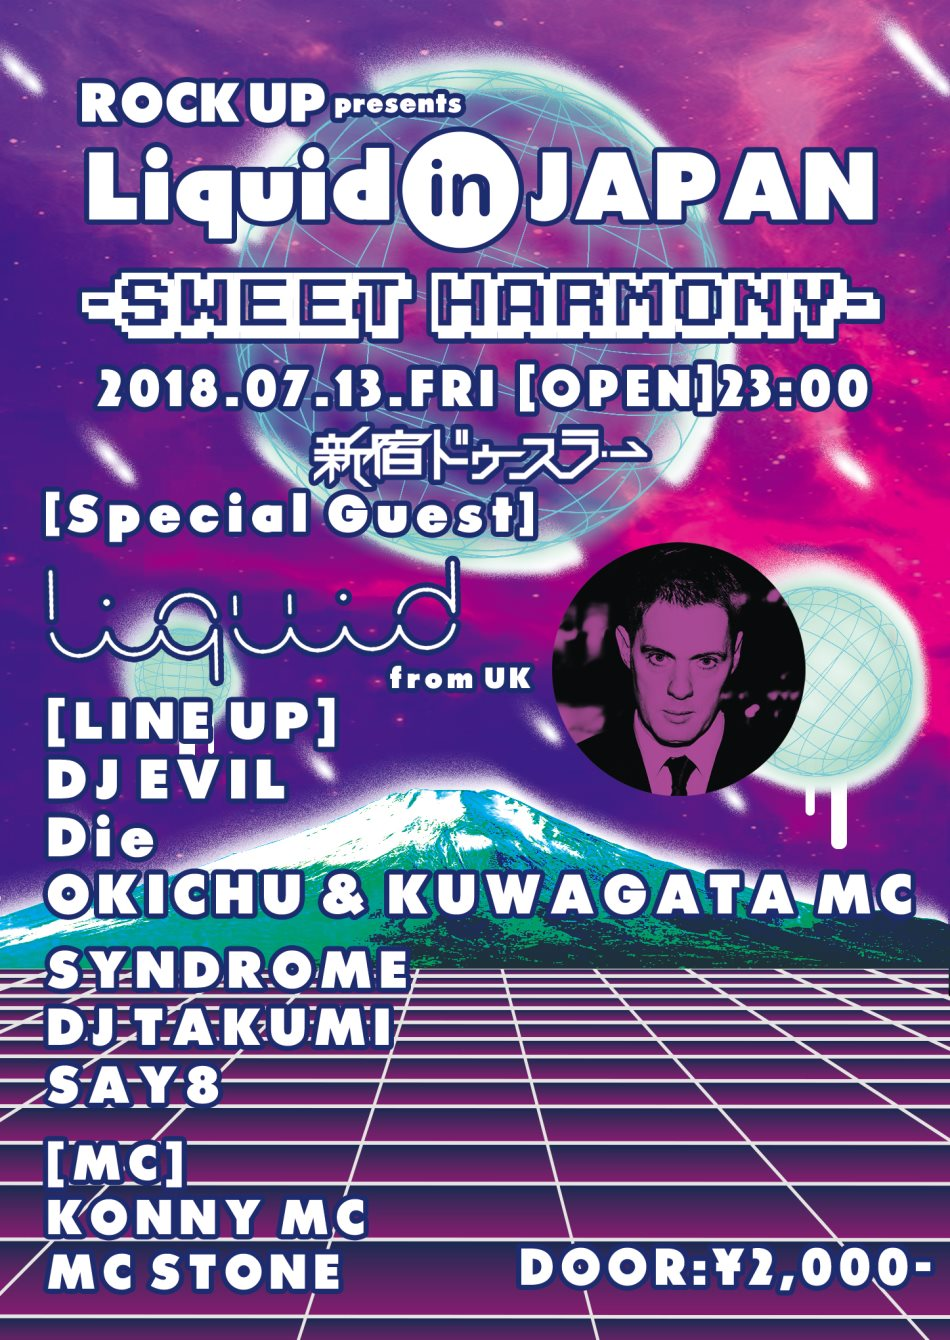 ROCK UP presents 「Sweet Harmony -Liquid in JAPAN -」